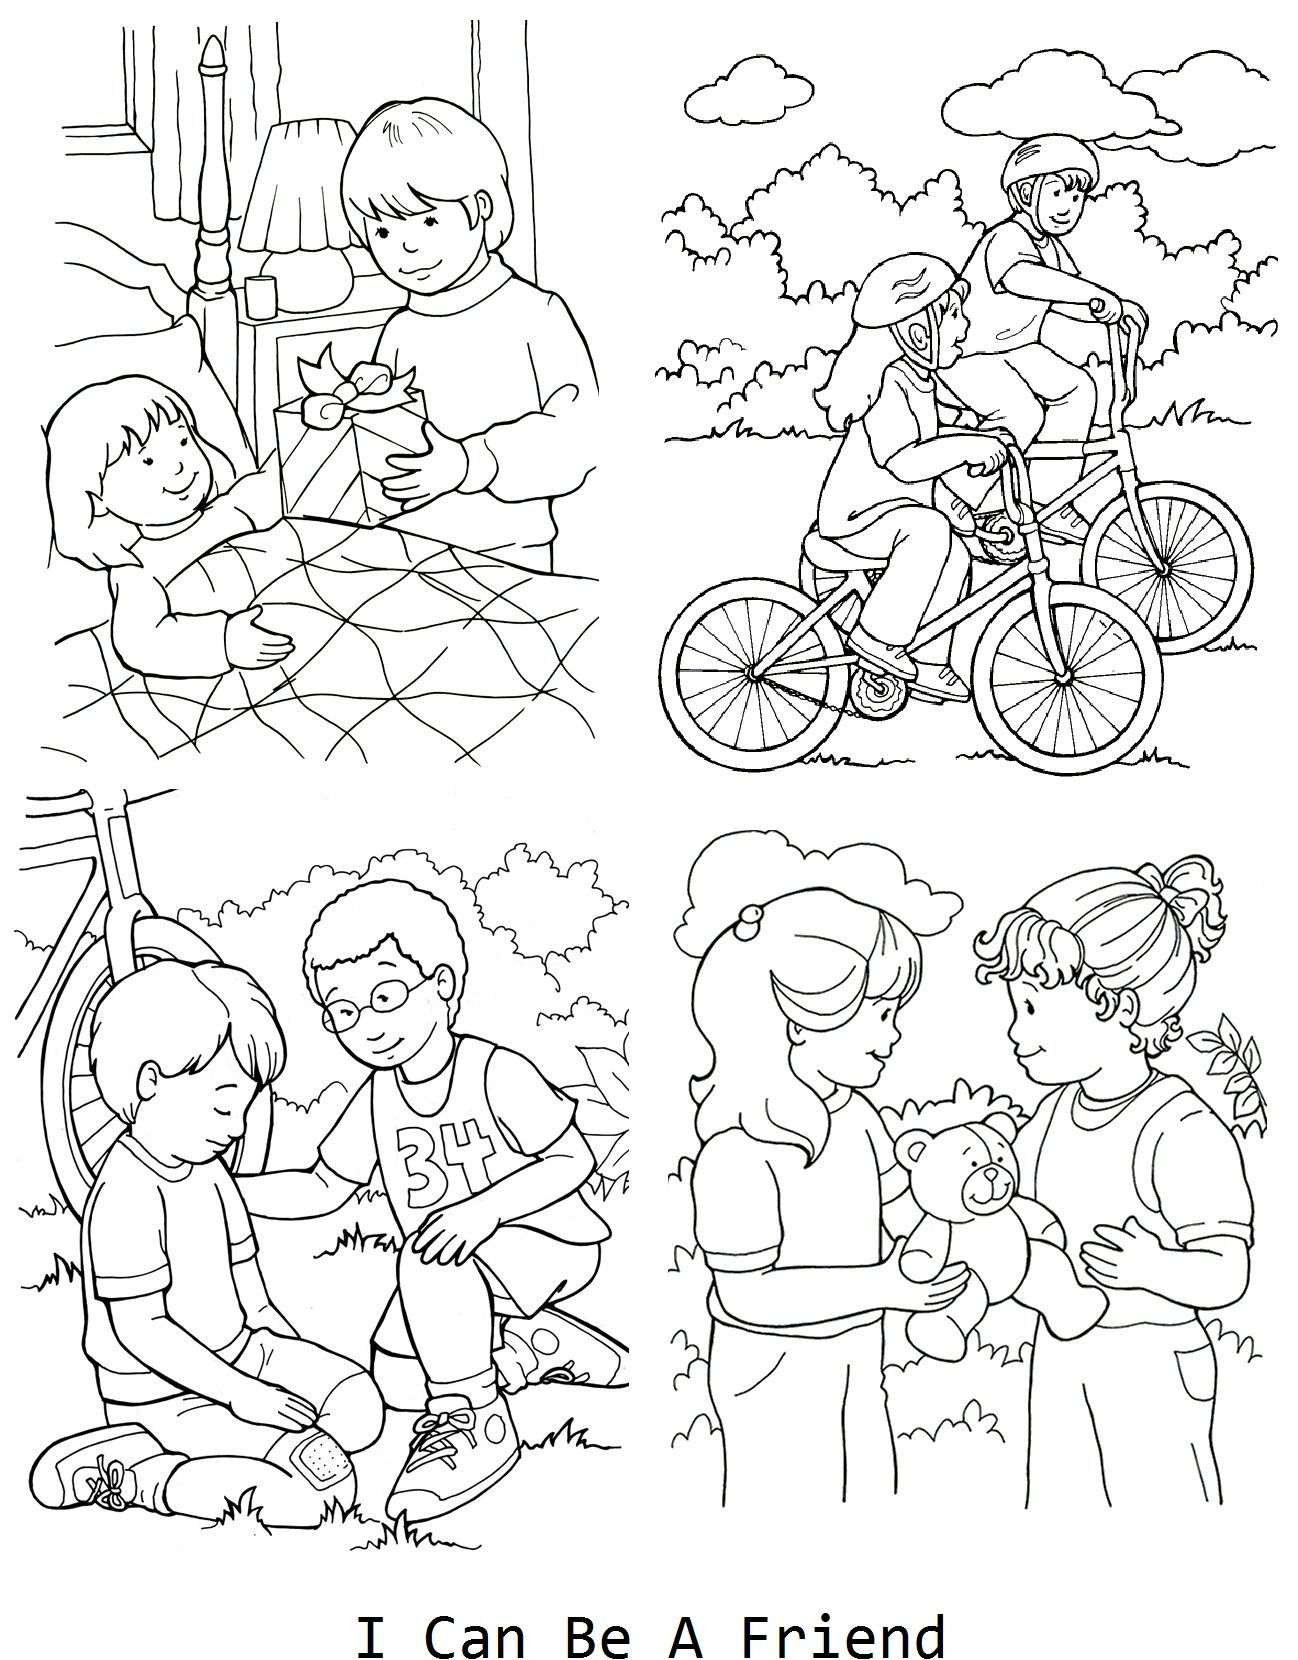 I Can Be A Friend Coloring Page For Lesson 33 Lds Coloring Pages